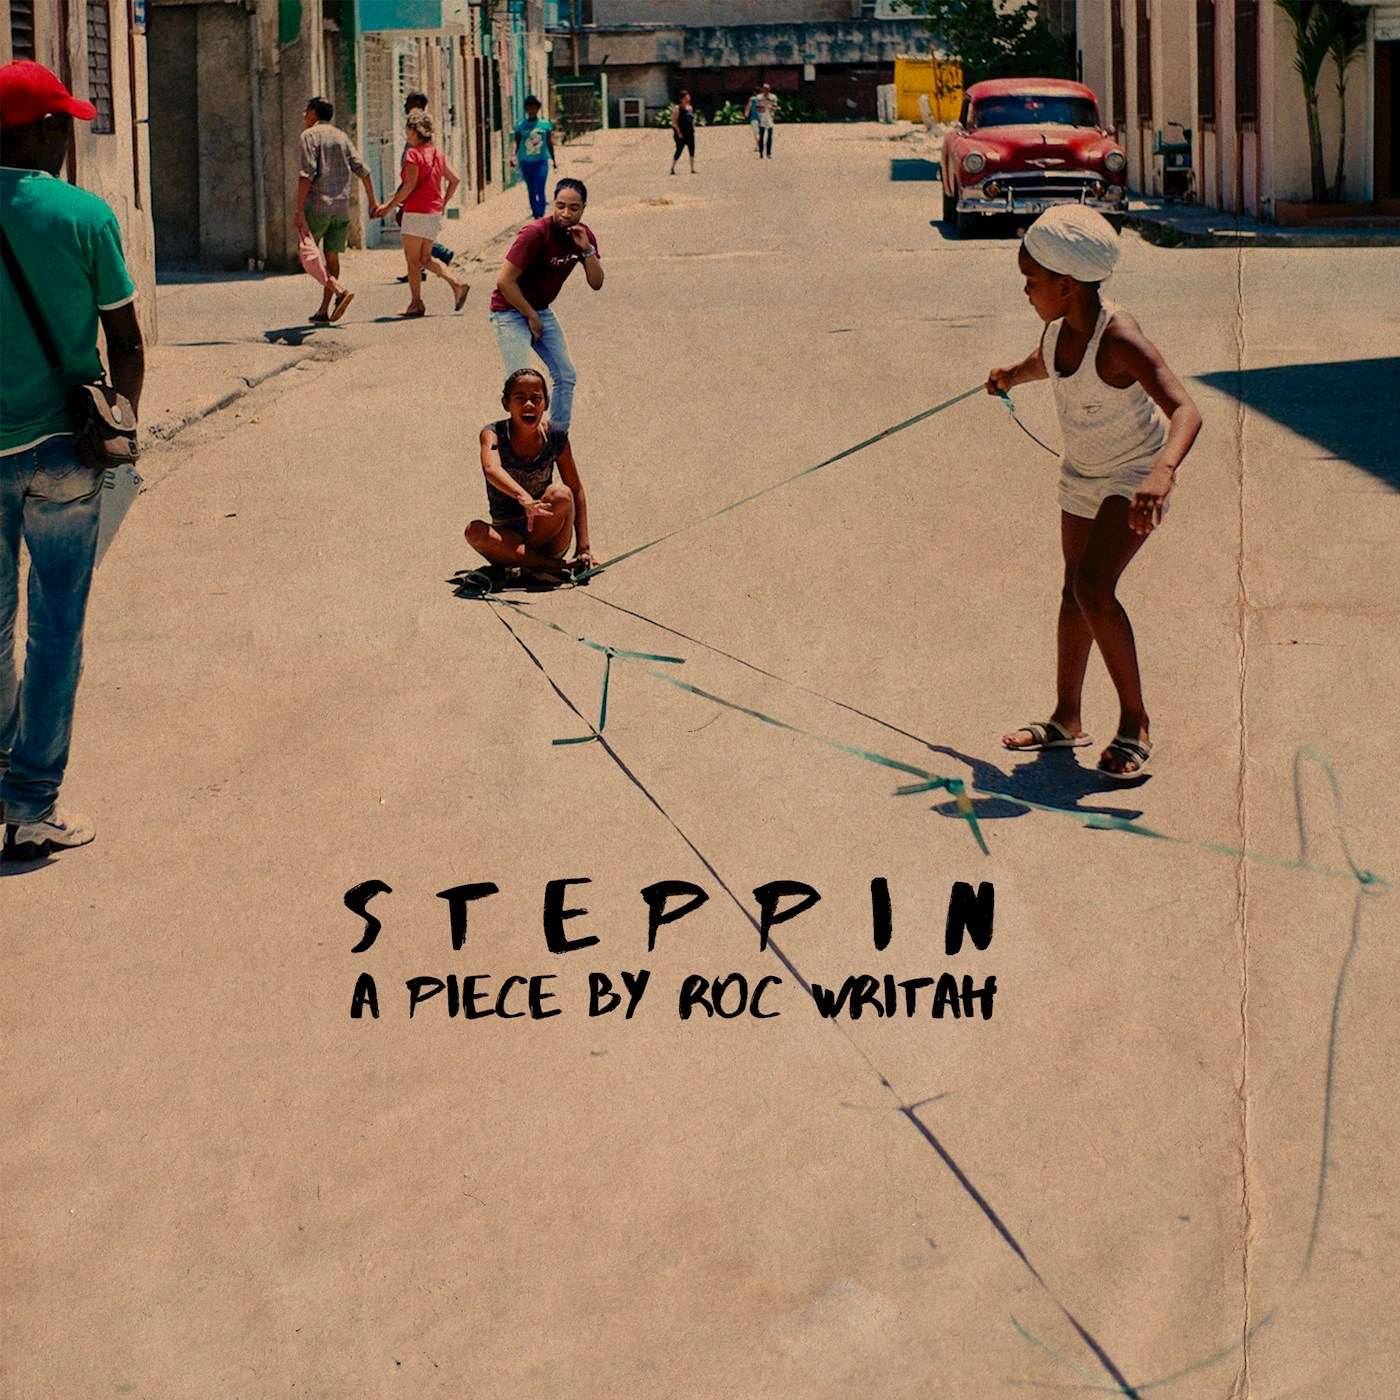 """Steppin"" by Roc Writah"